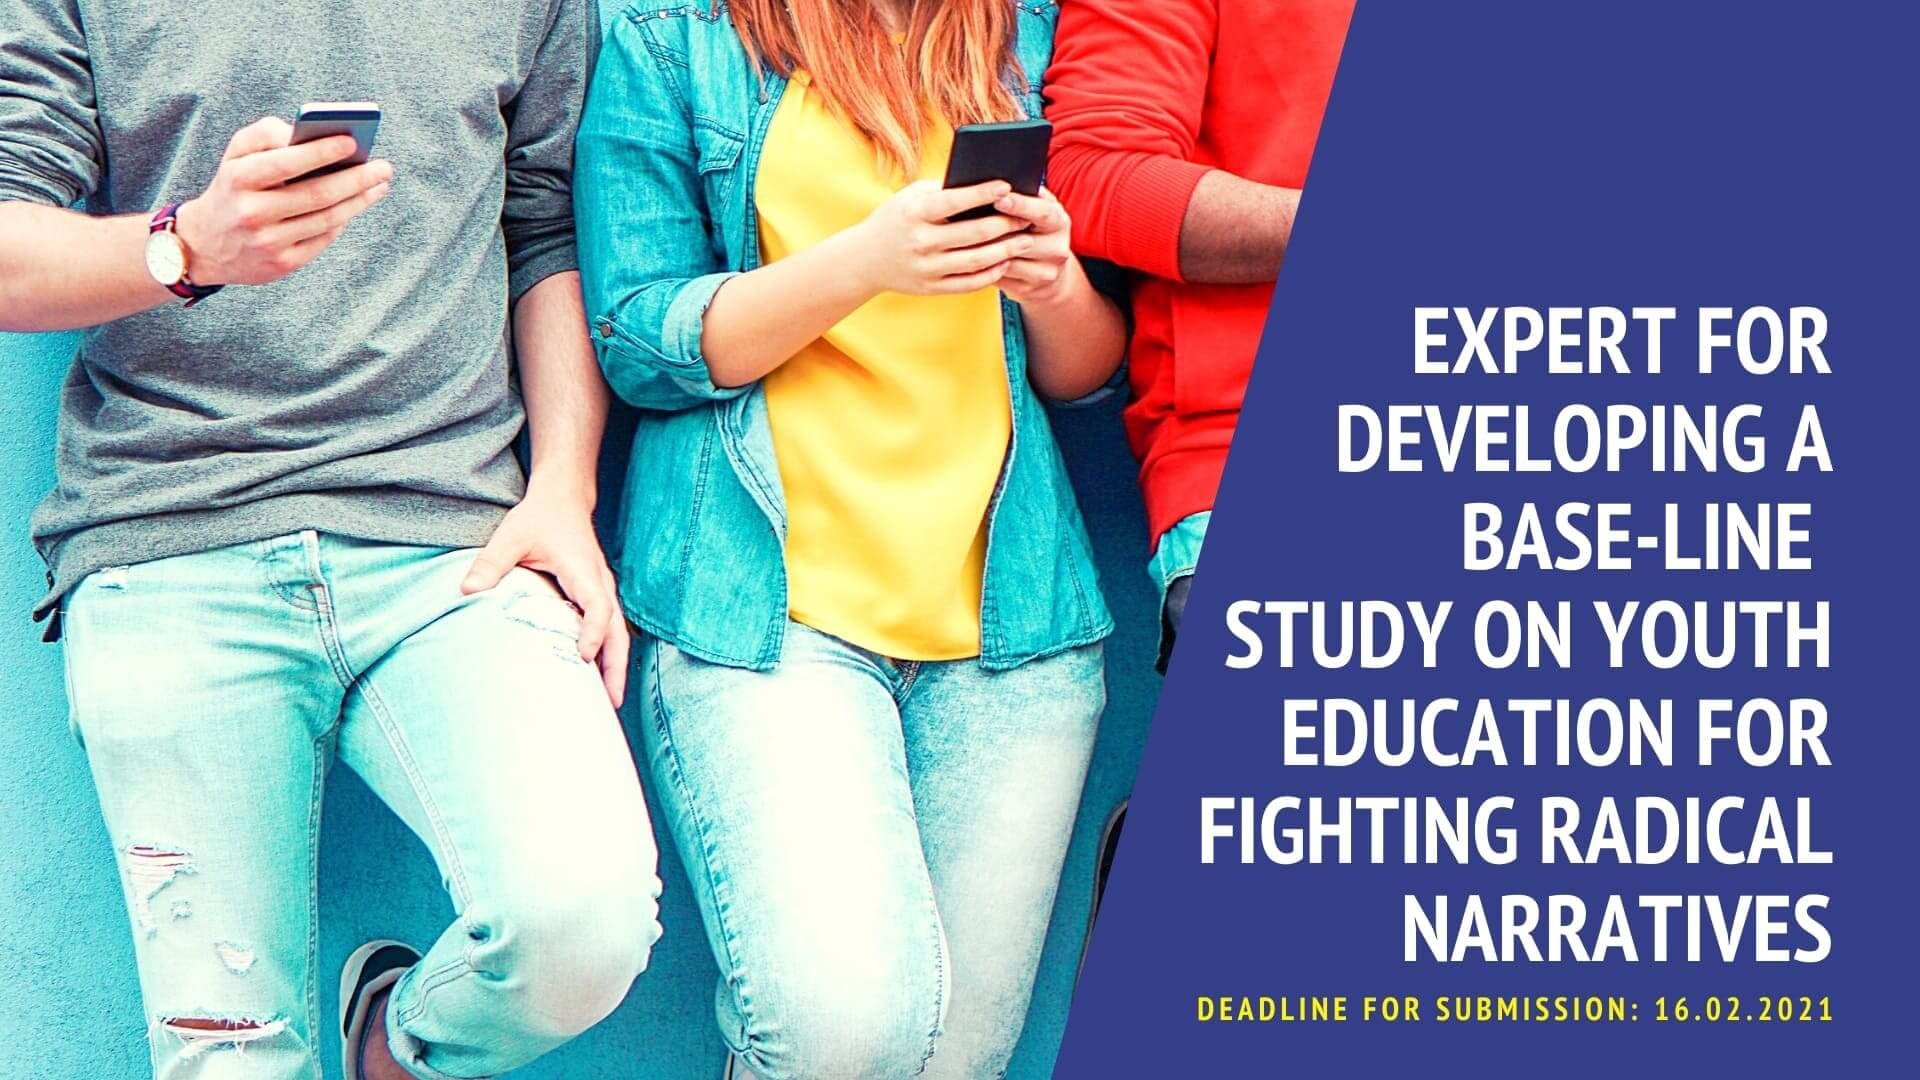 You are currently viewing ToR for Expert for developing a base-line study on youth education for fighting radical narratives